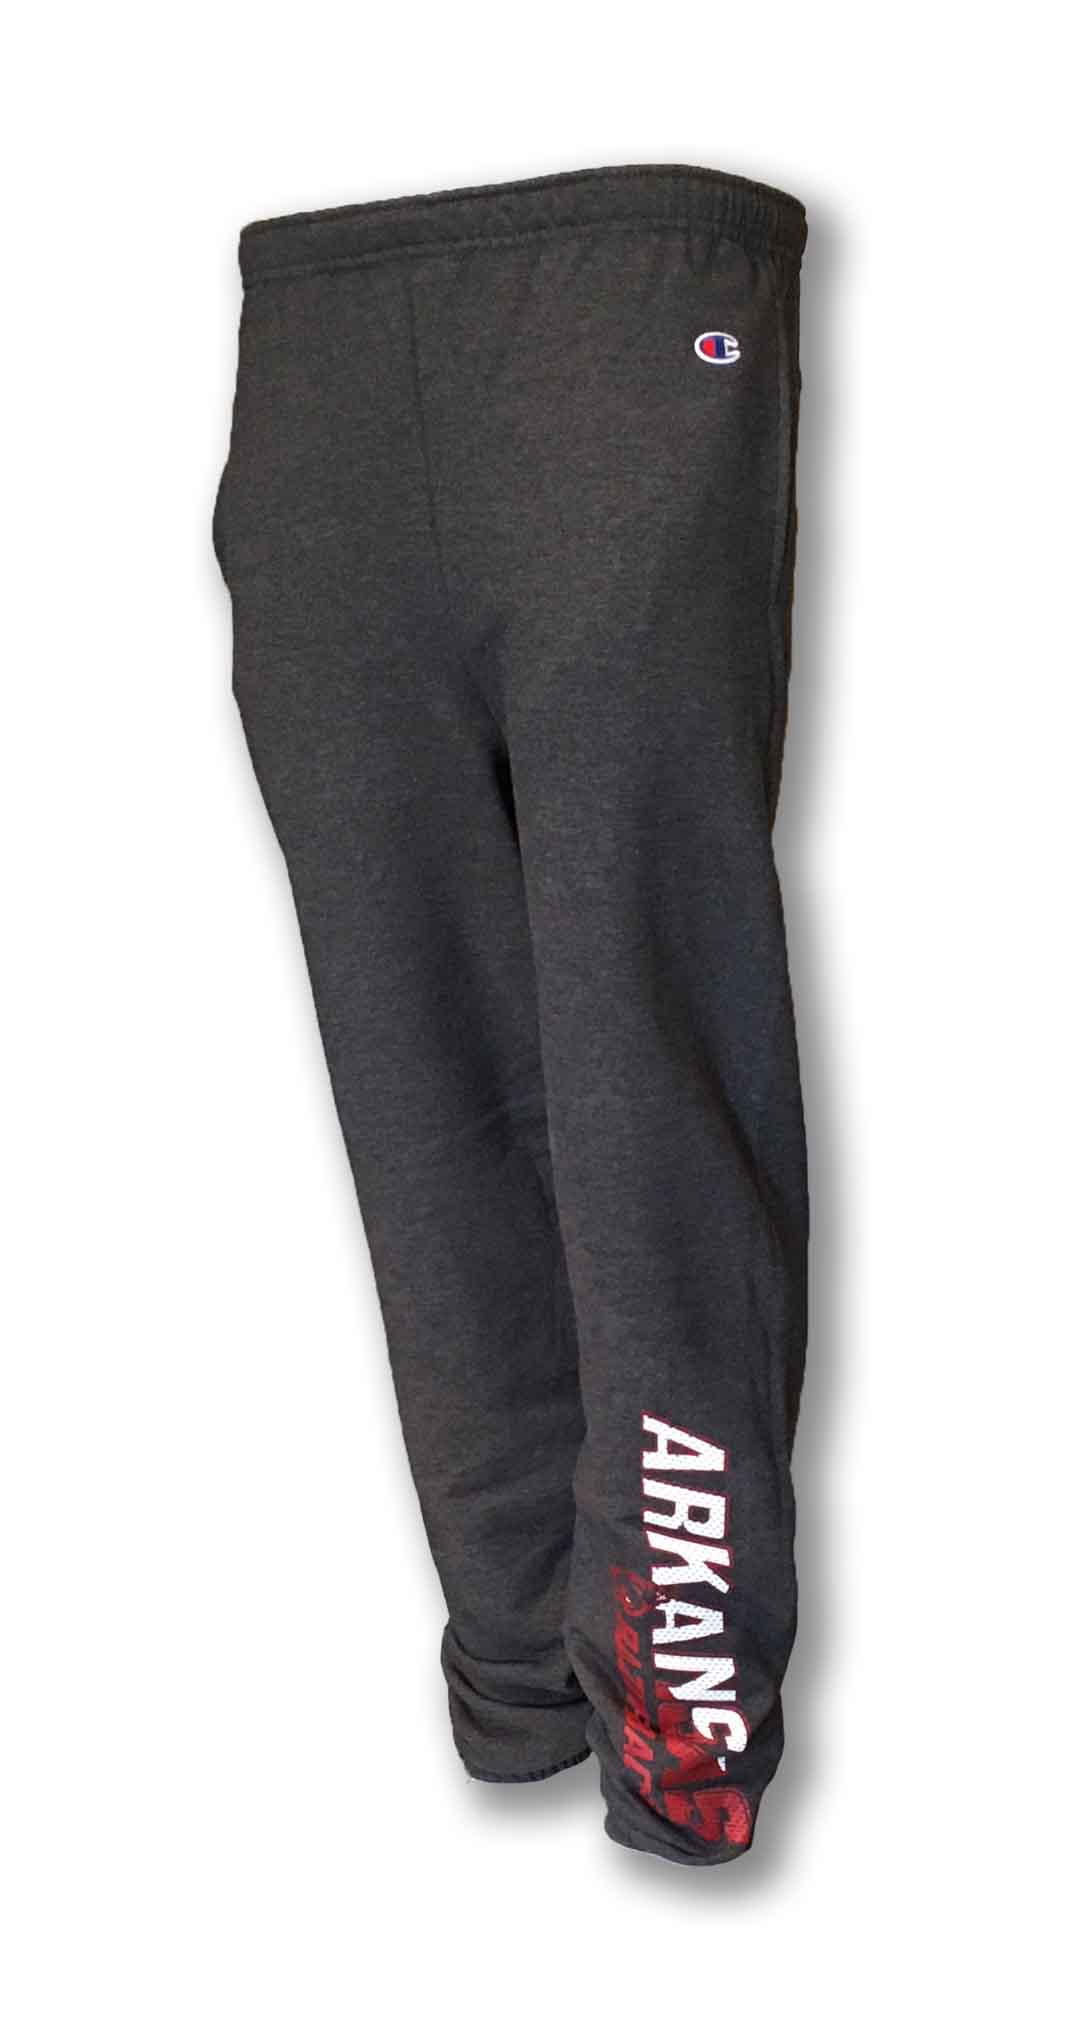 Razorback Sweatpants